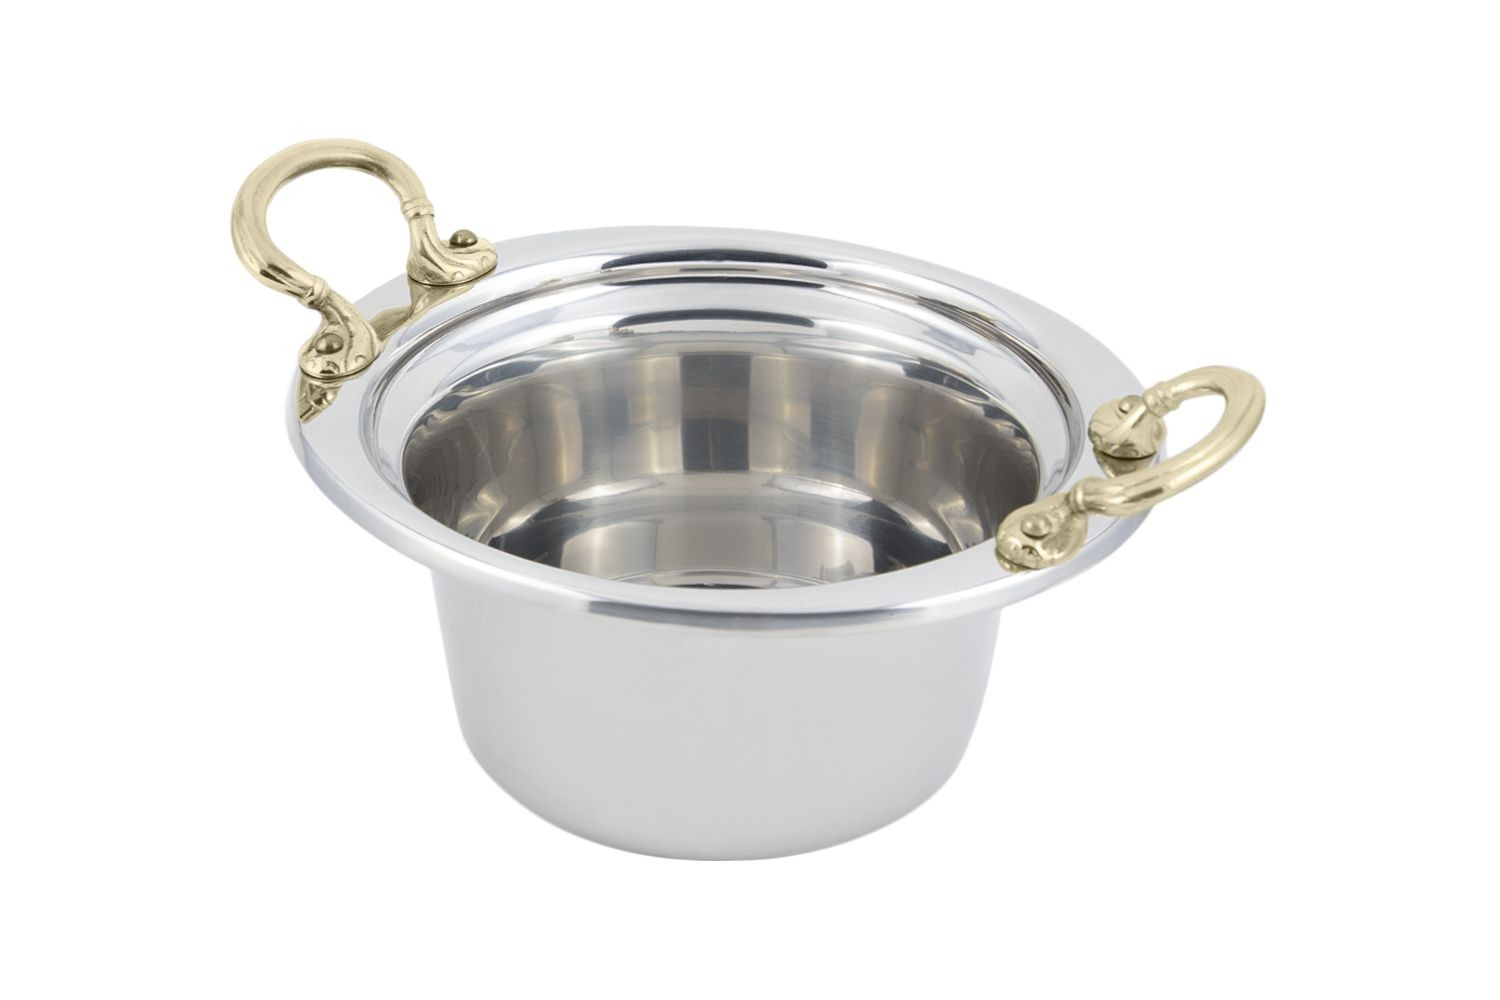 Bon Chef 5250HR Plain Design Casserole Dish with Round Brass Handles, 2 Qt.